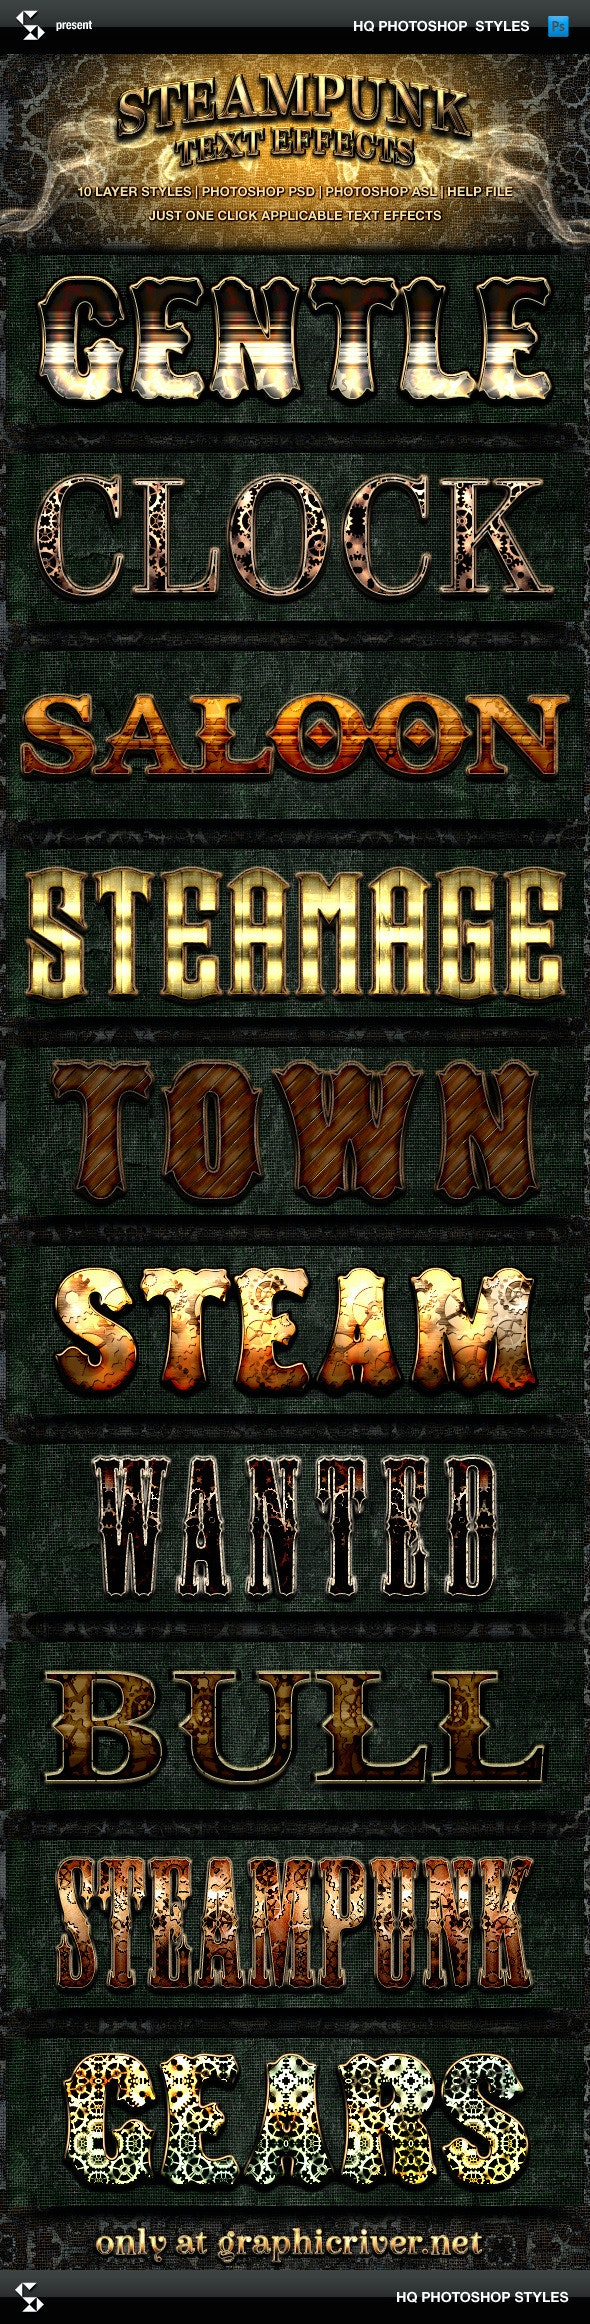 Steampunk Text Effects - Text Effects Styles